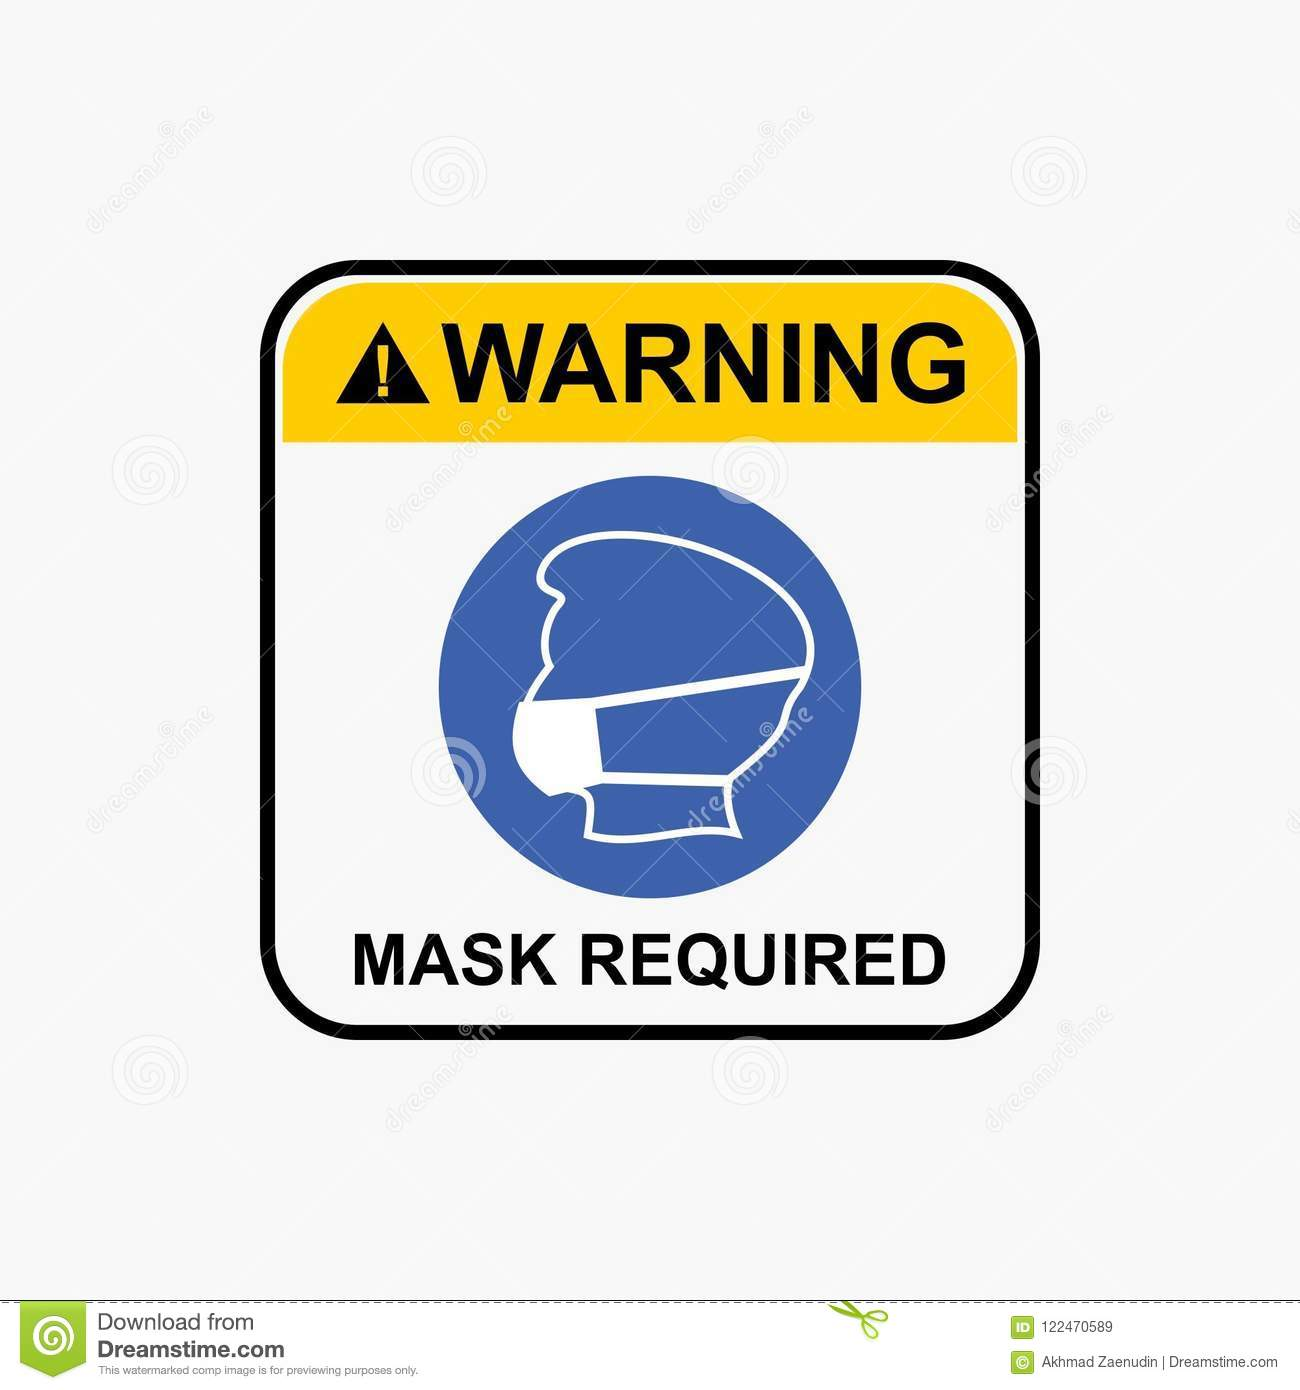 Mask Required Icon, Wear Dust Mask Icon, Warning Icon Design Vector